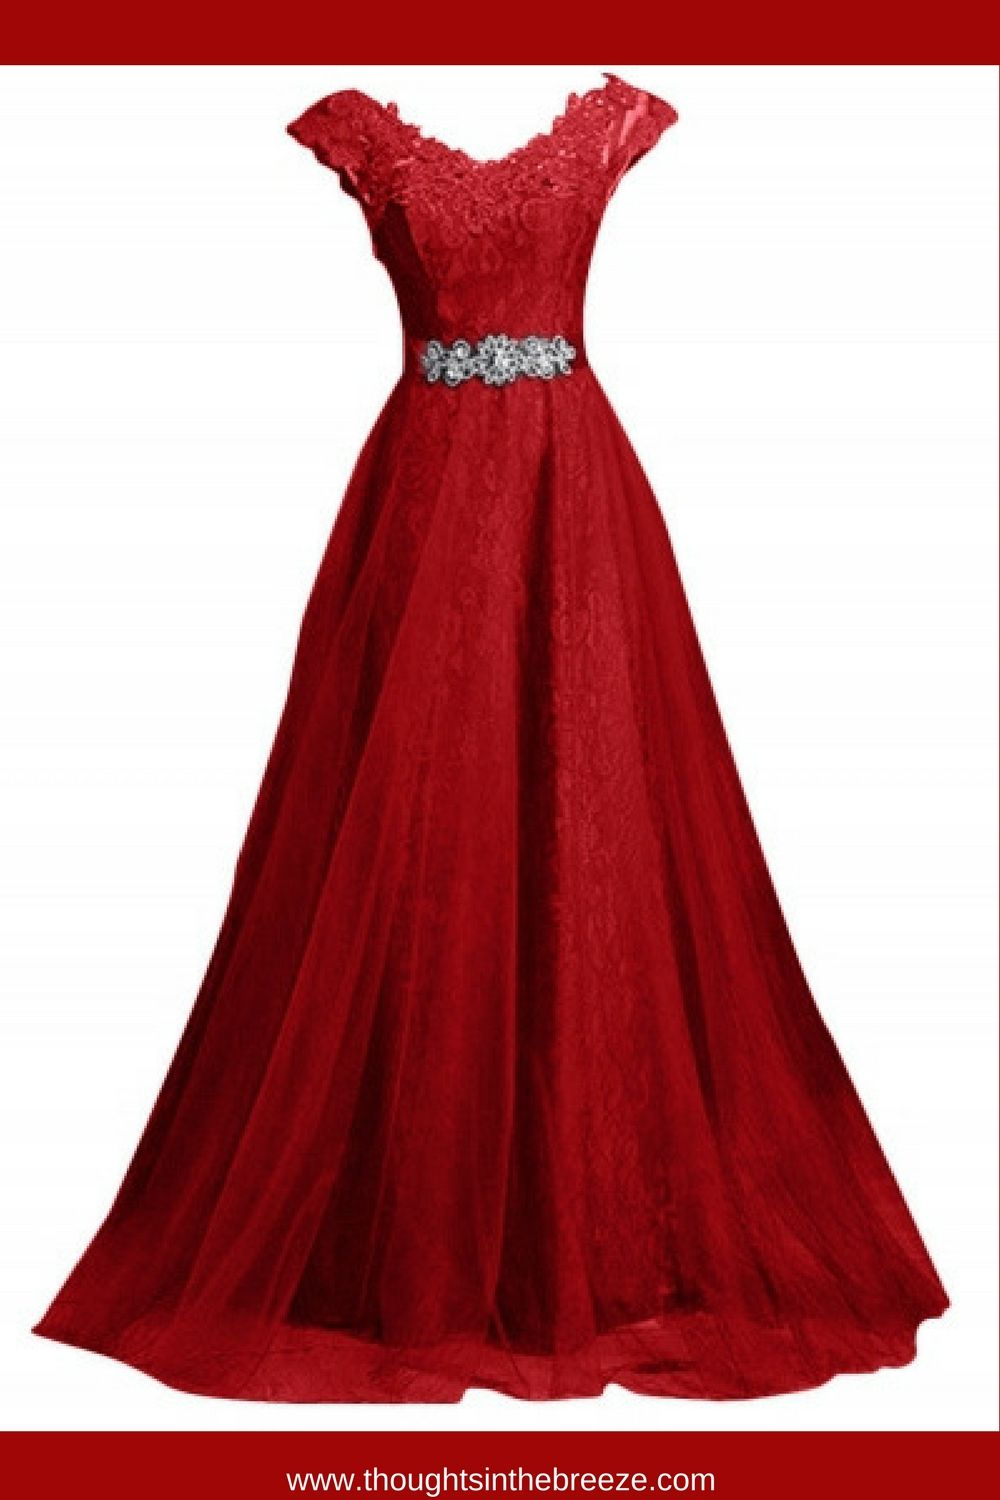 Womenus floral lace paneled v neck prom dress looking for an